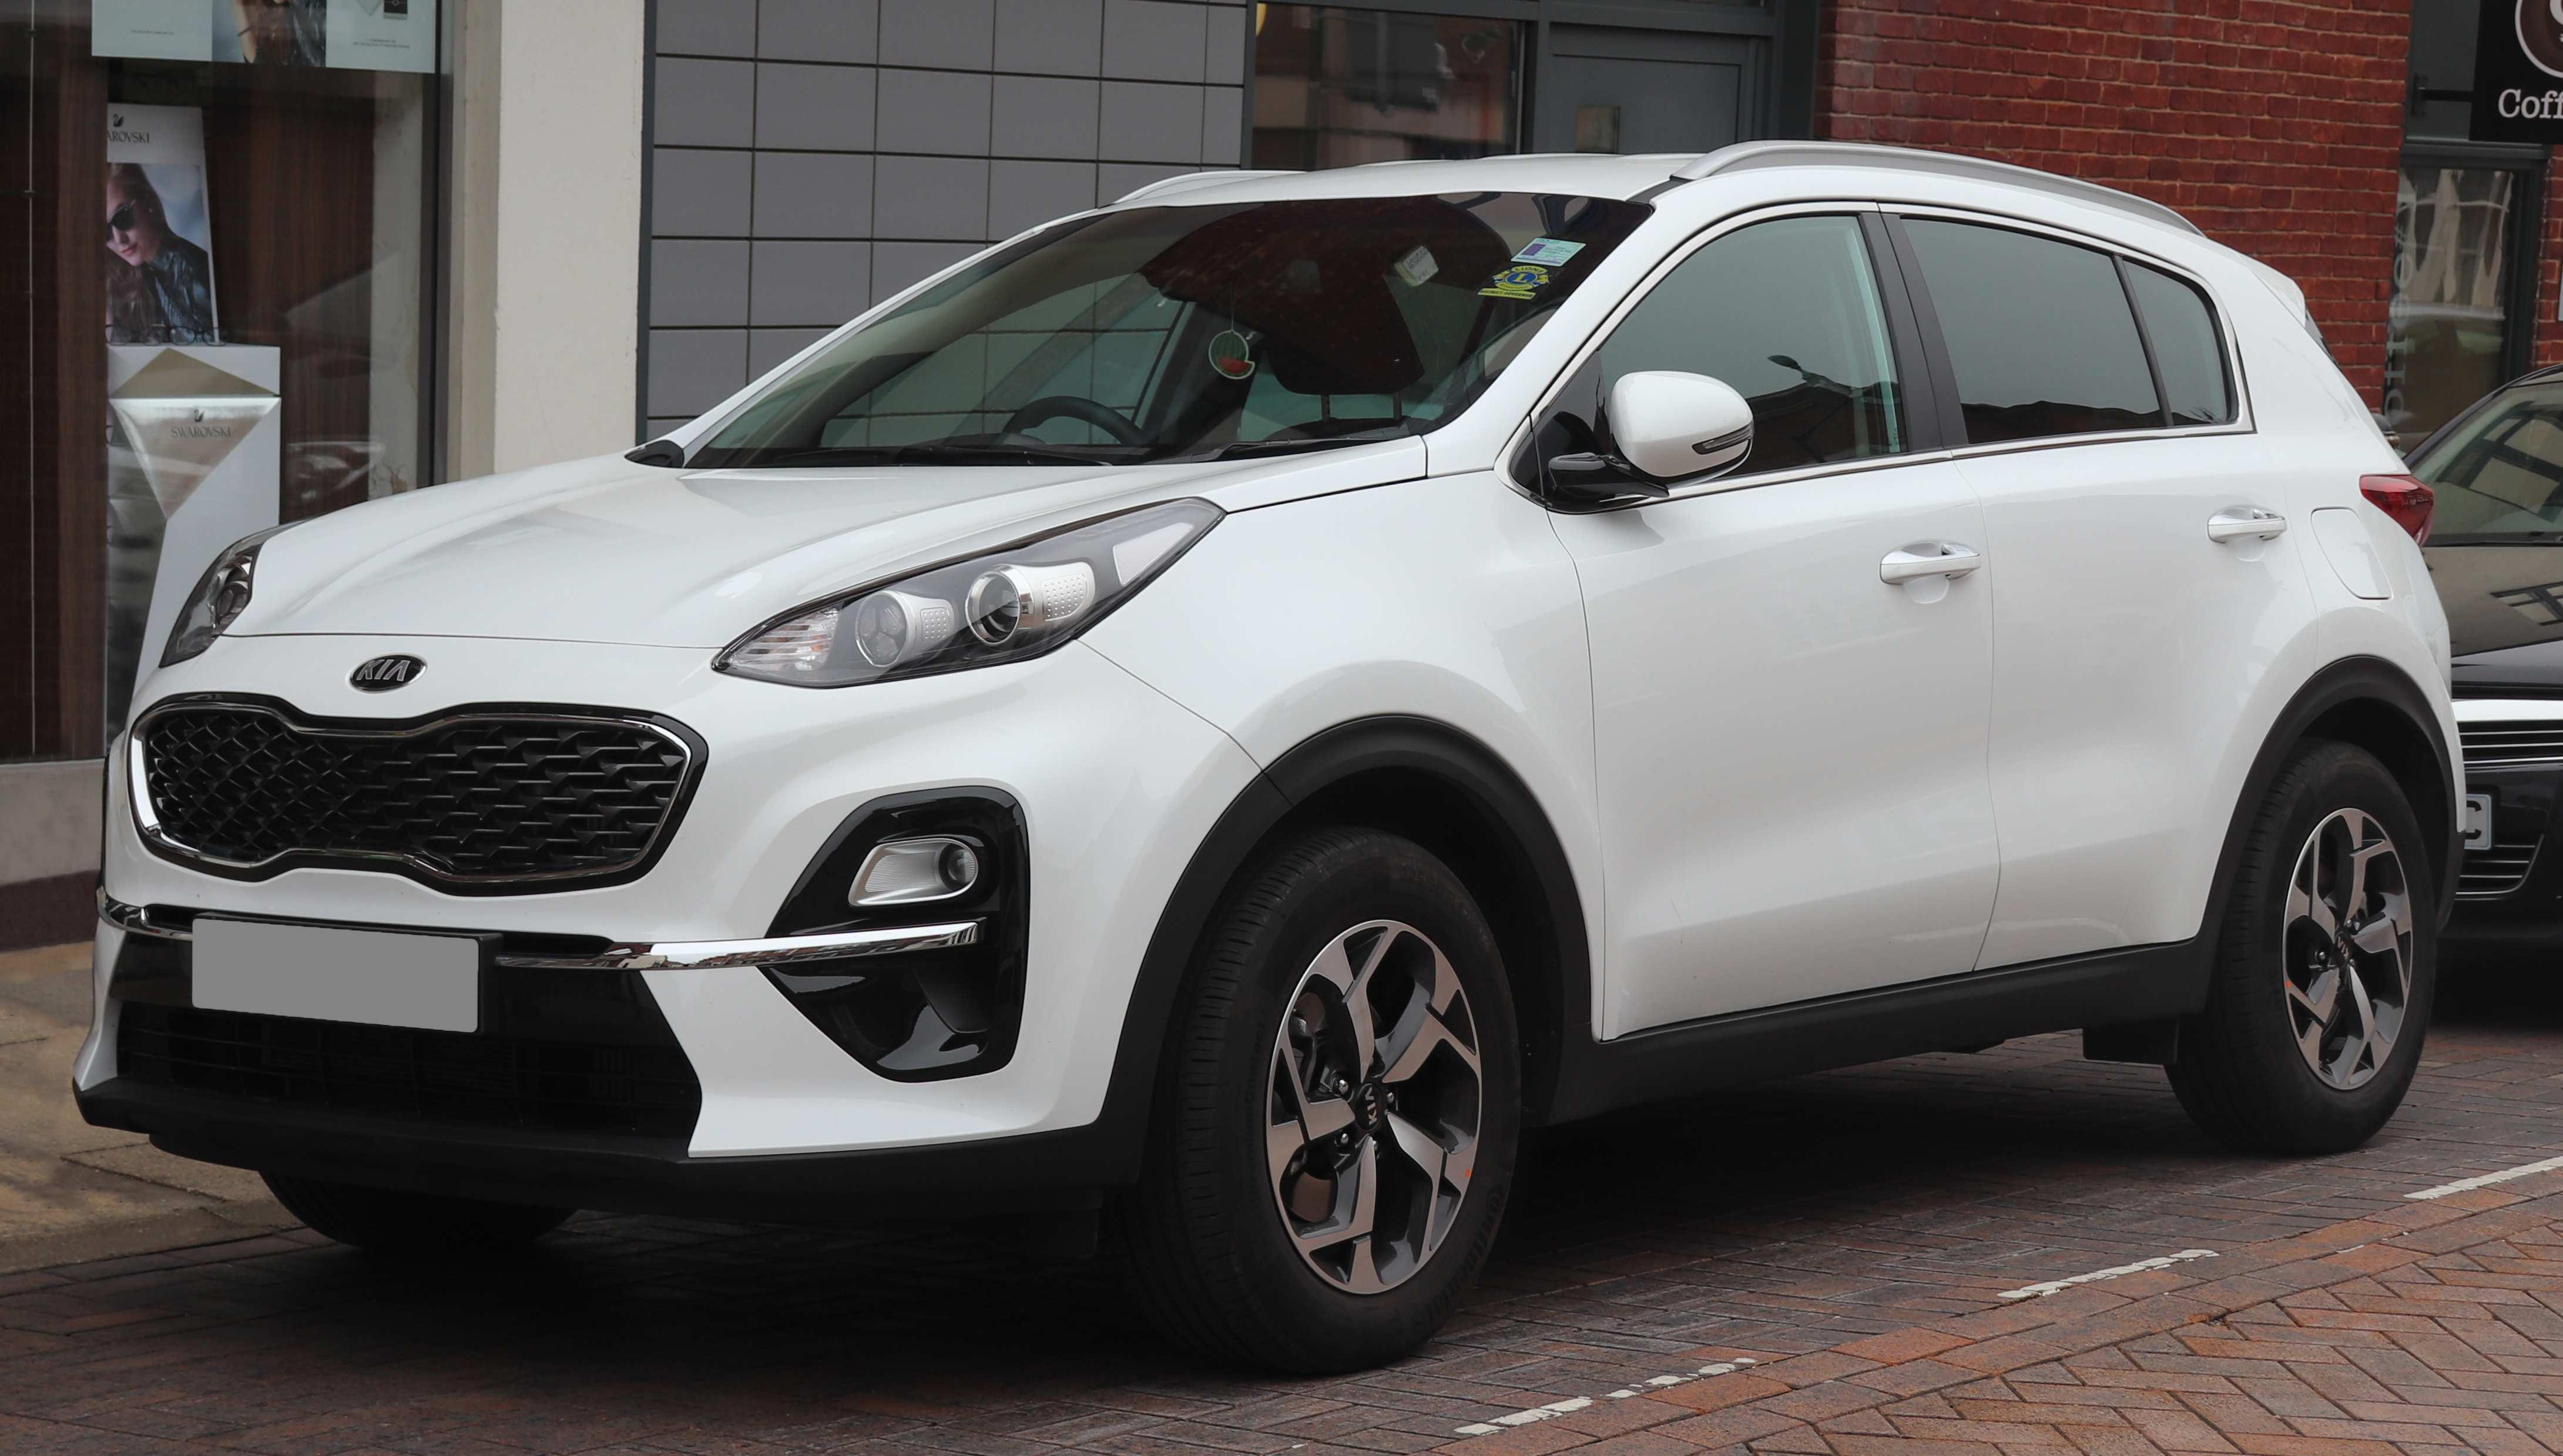 17 New New Kia 2019 Malaysia Specs And Review Concept for New Kia 2019 Malaysia Specs And Review